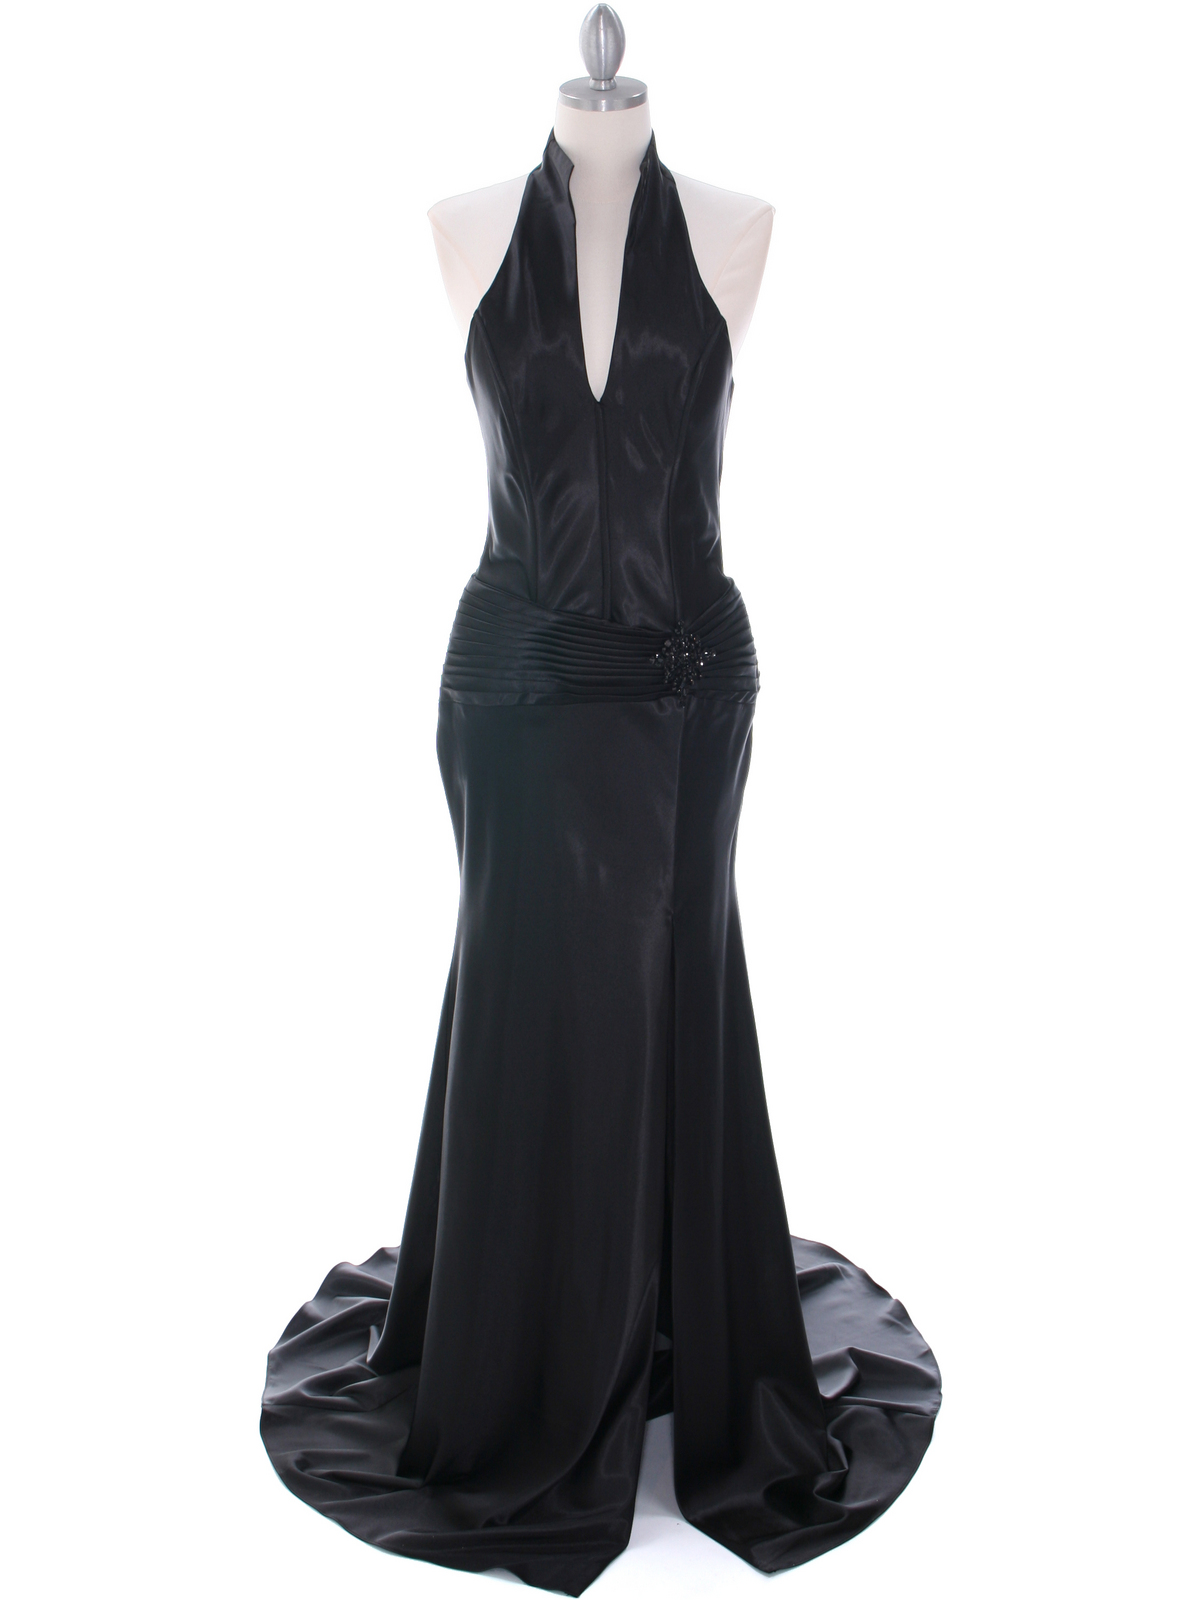 7701 Black Evening Dress - Front Image